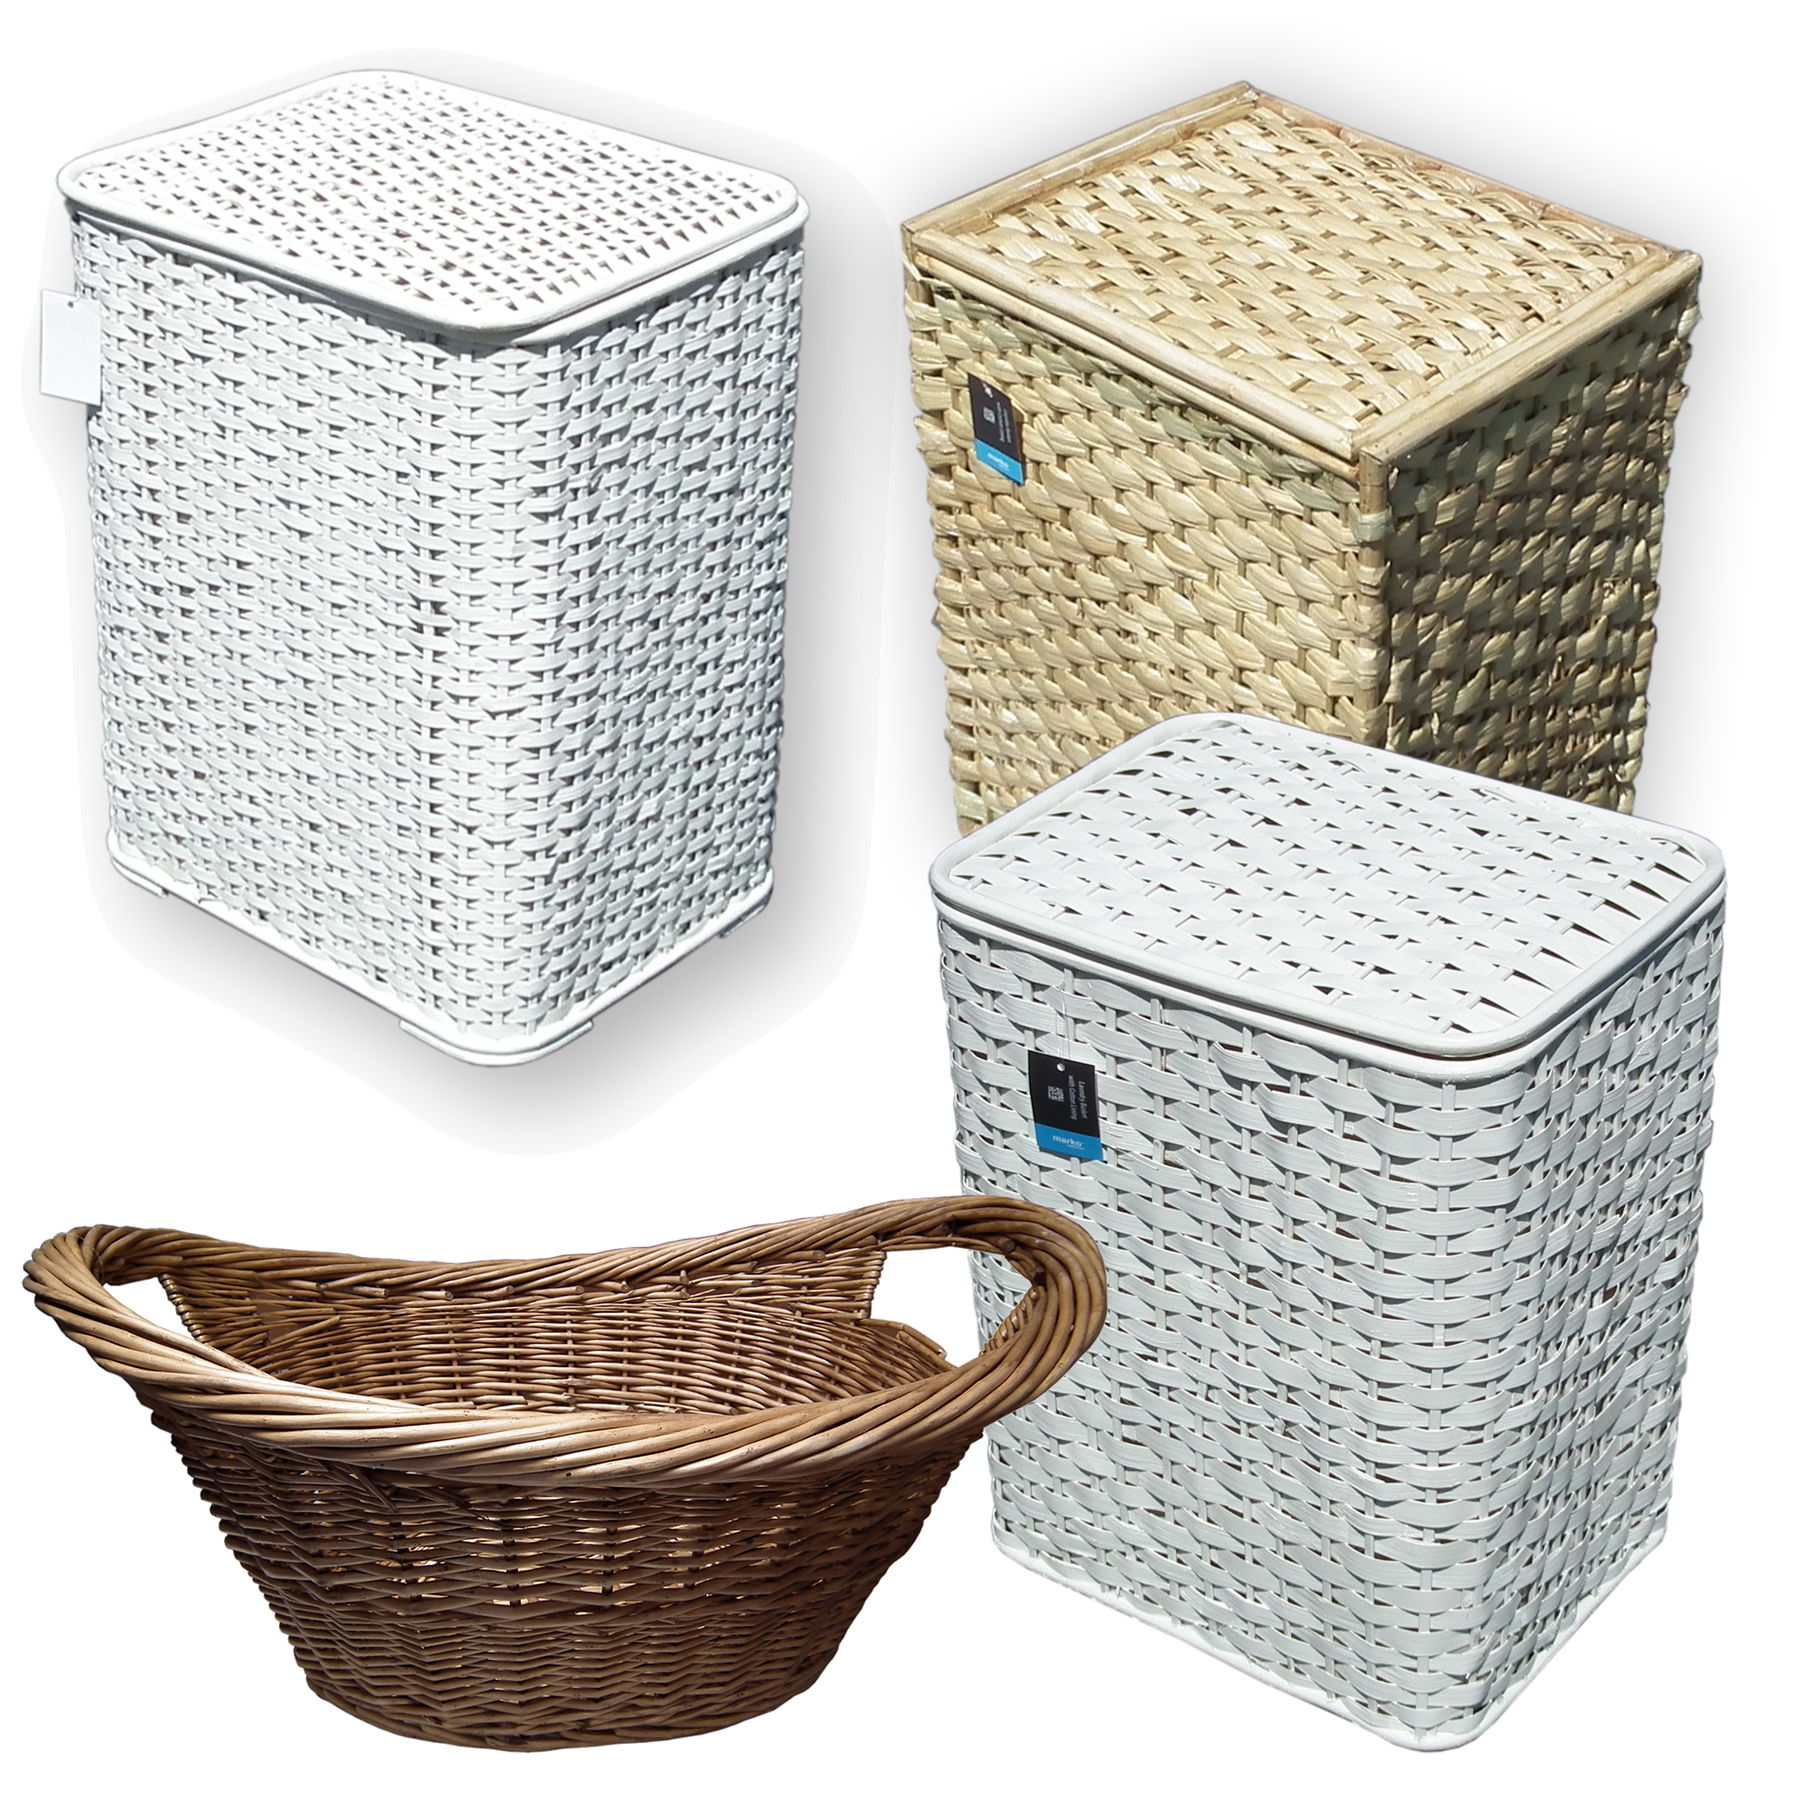 Clothes Baskets Bamboo Seagrass Wicker Laundry Basket Lid White Woven